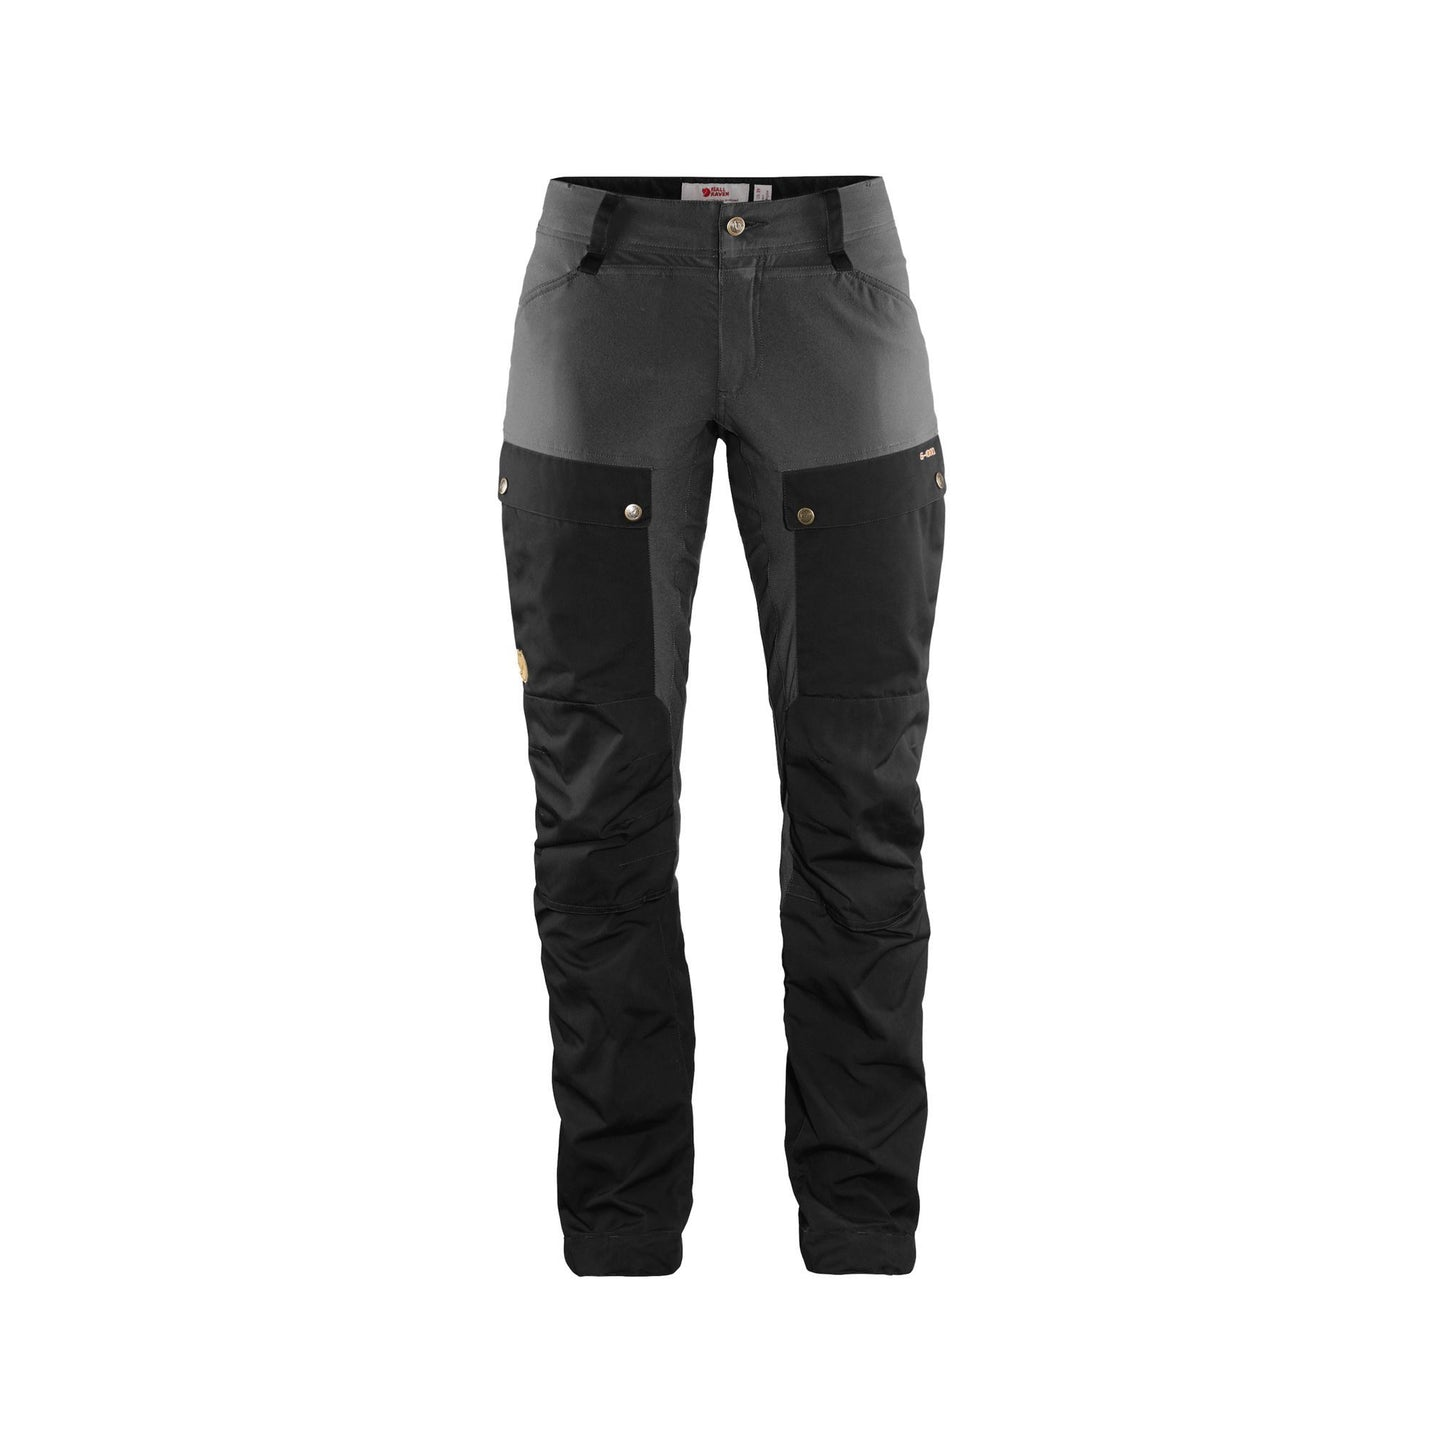 "550-018 - Black-Stone Grey / 24-25"" waist 